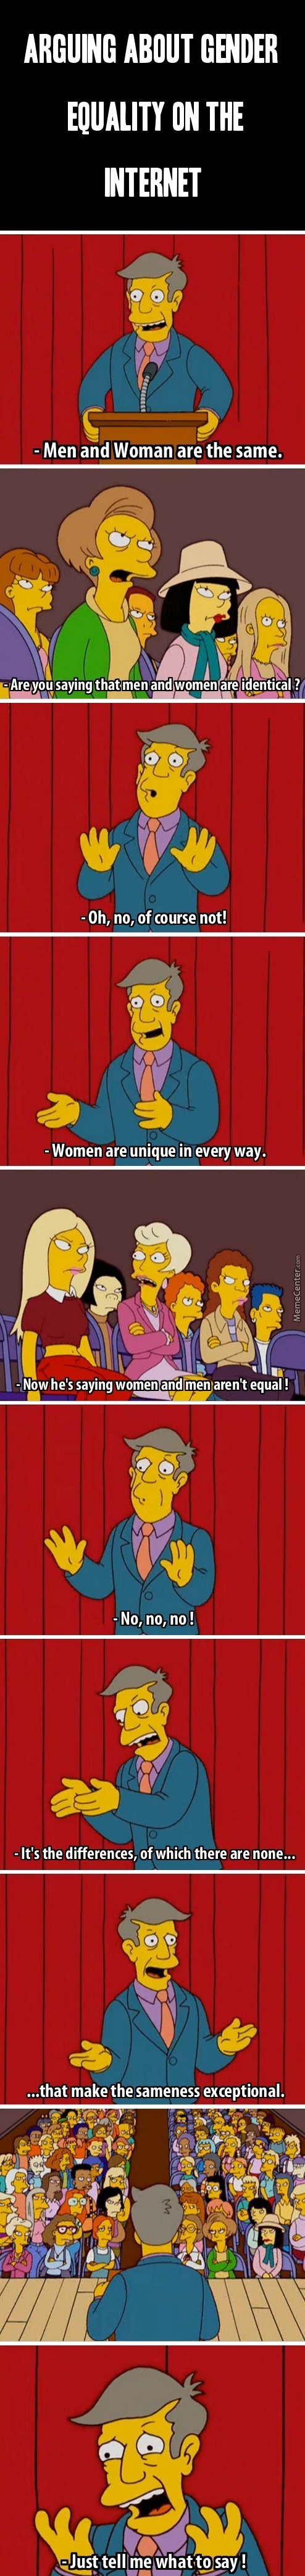 Arguing About Gender Equality On The Internet